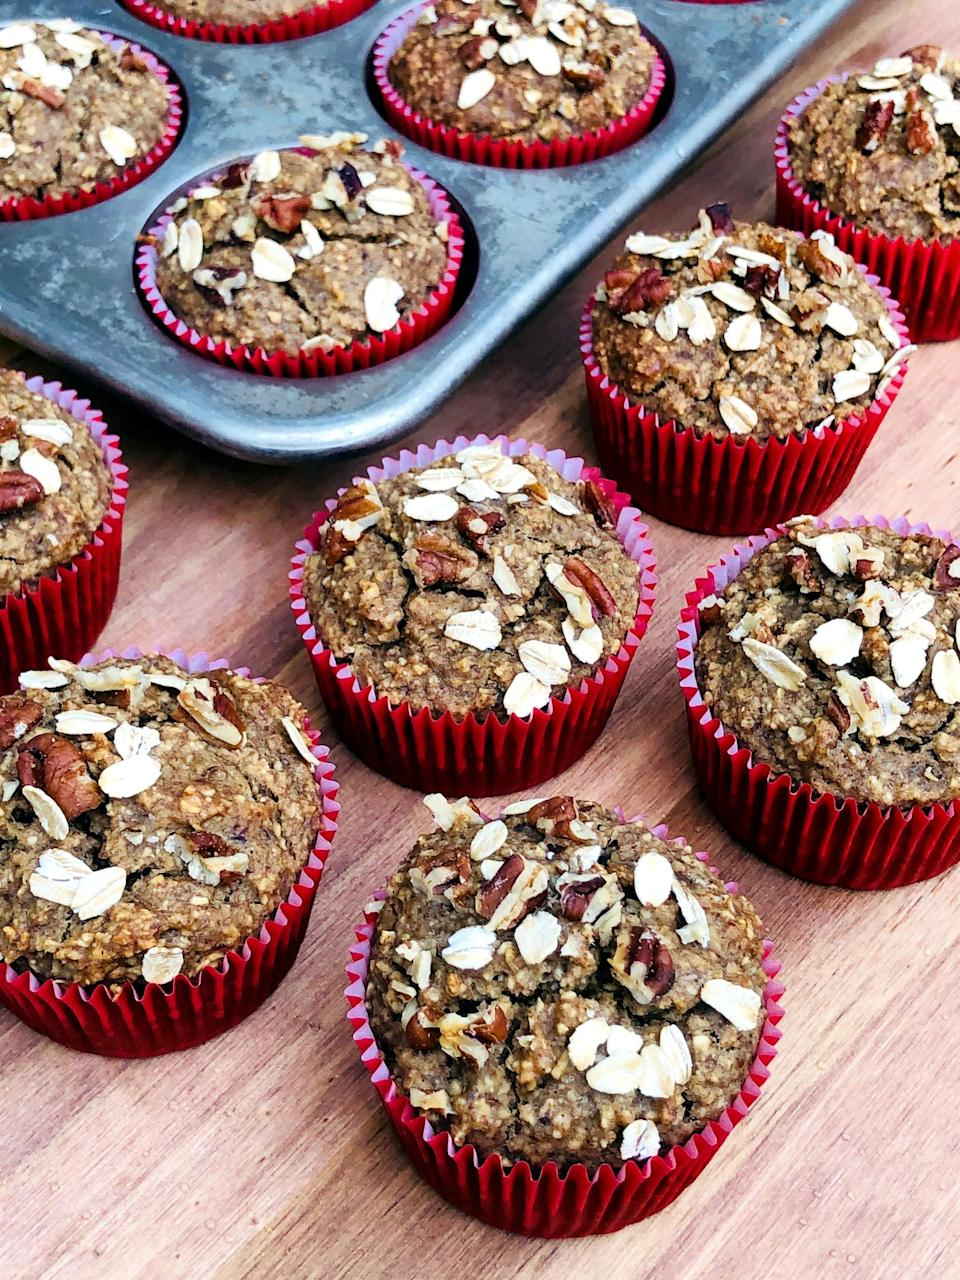 "<p>If you're gluten-free, here's a tried-and-true recipe that tastes amazing - no special gluten-free flour mix required.</p> <p><strong>Calories:</strong> 153 per muffin<br> <strong>Protein:</strong> 6.7 grams</p> <p><strong>Get the recipe:</strong> <a href=""https://www.popsugar.com/fitness/gluten-free-high-protein-banana-nut-muffins-47315547"" class=""link rapid-noclick-resp"" rel=""nofollow noopener"" target=""_blank"" data-ylk=""slk:gluten-free banana nut protein muffins"">gluten-free banana nut protein muffins </a></p>"